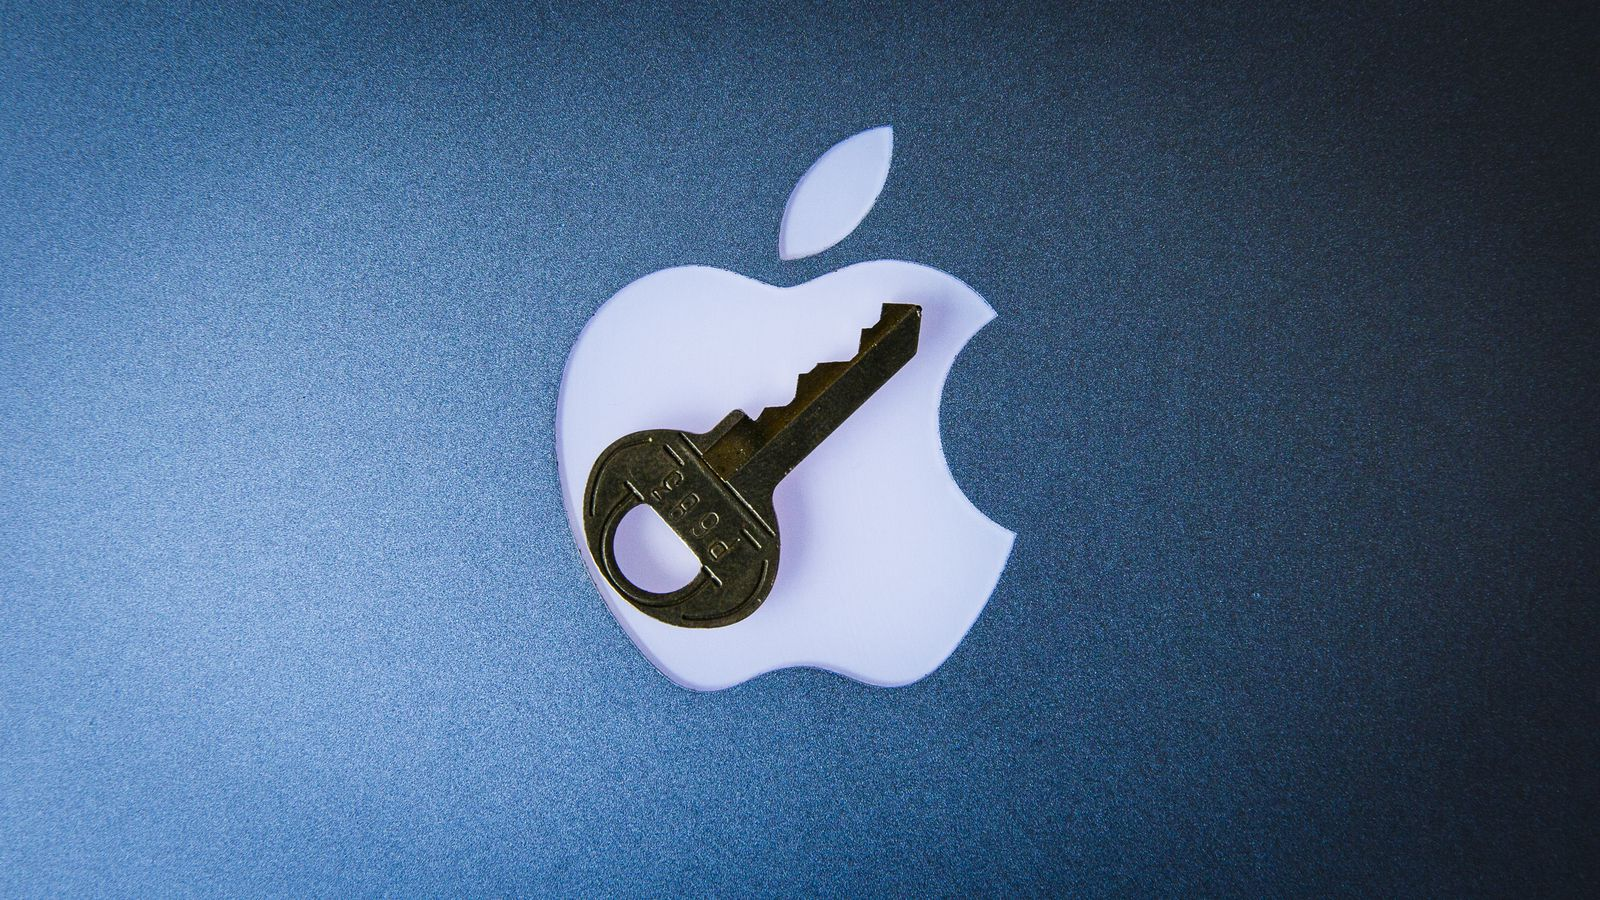 Apple's global national security report shows a drop in data demand as the pandemic spreads